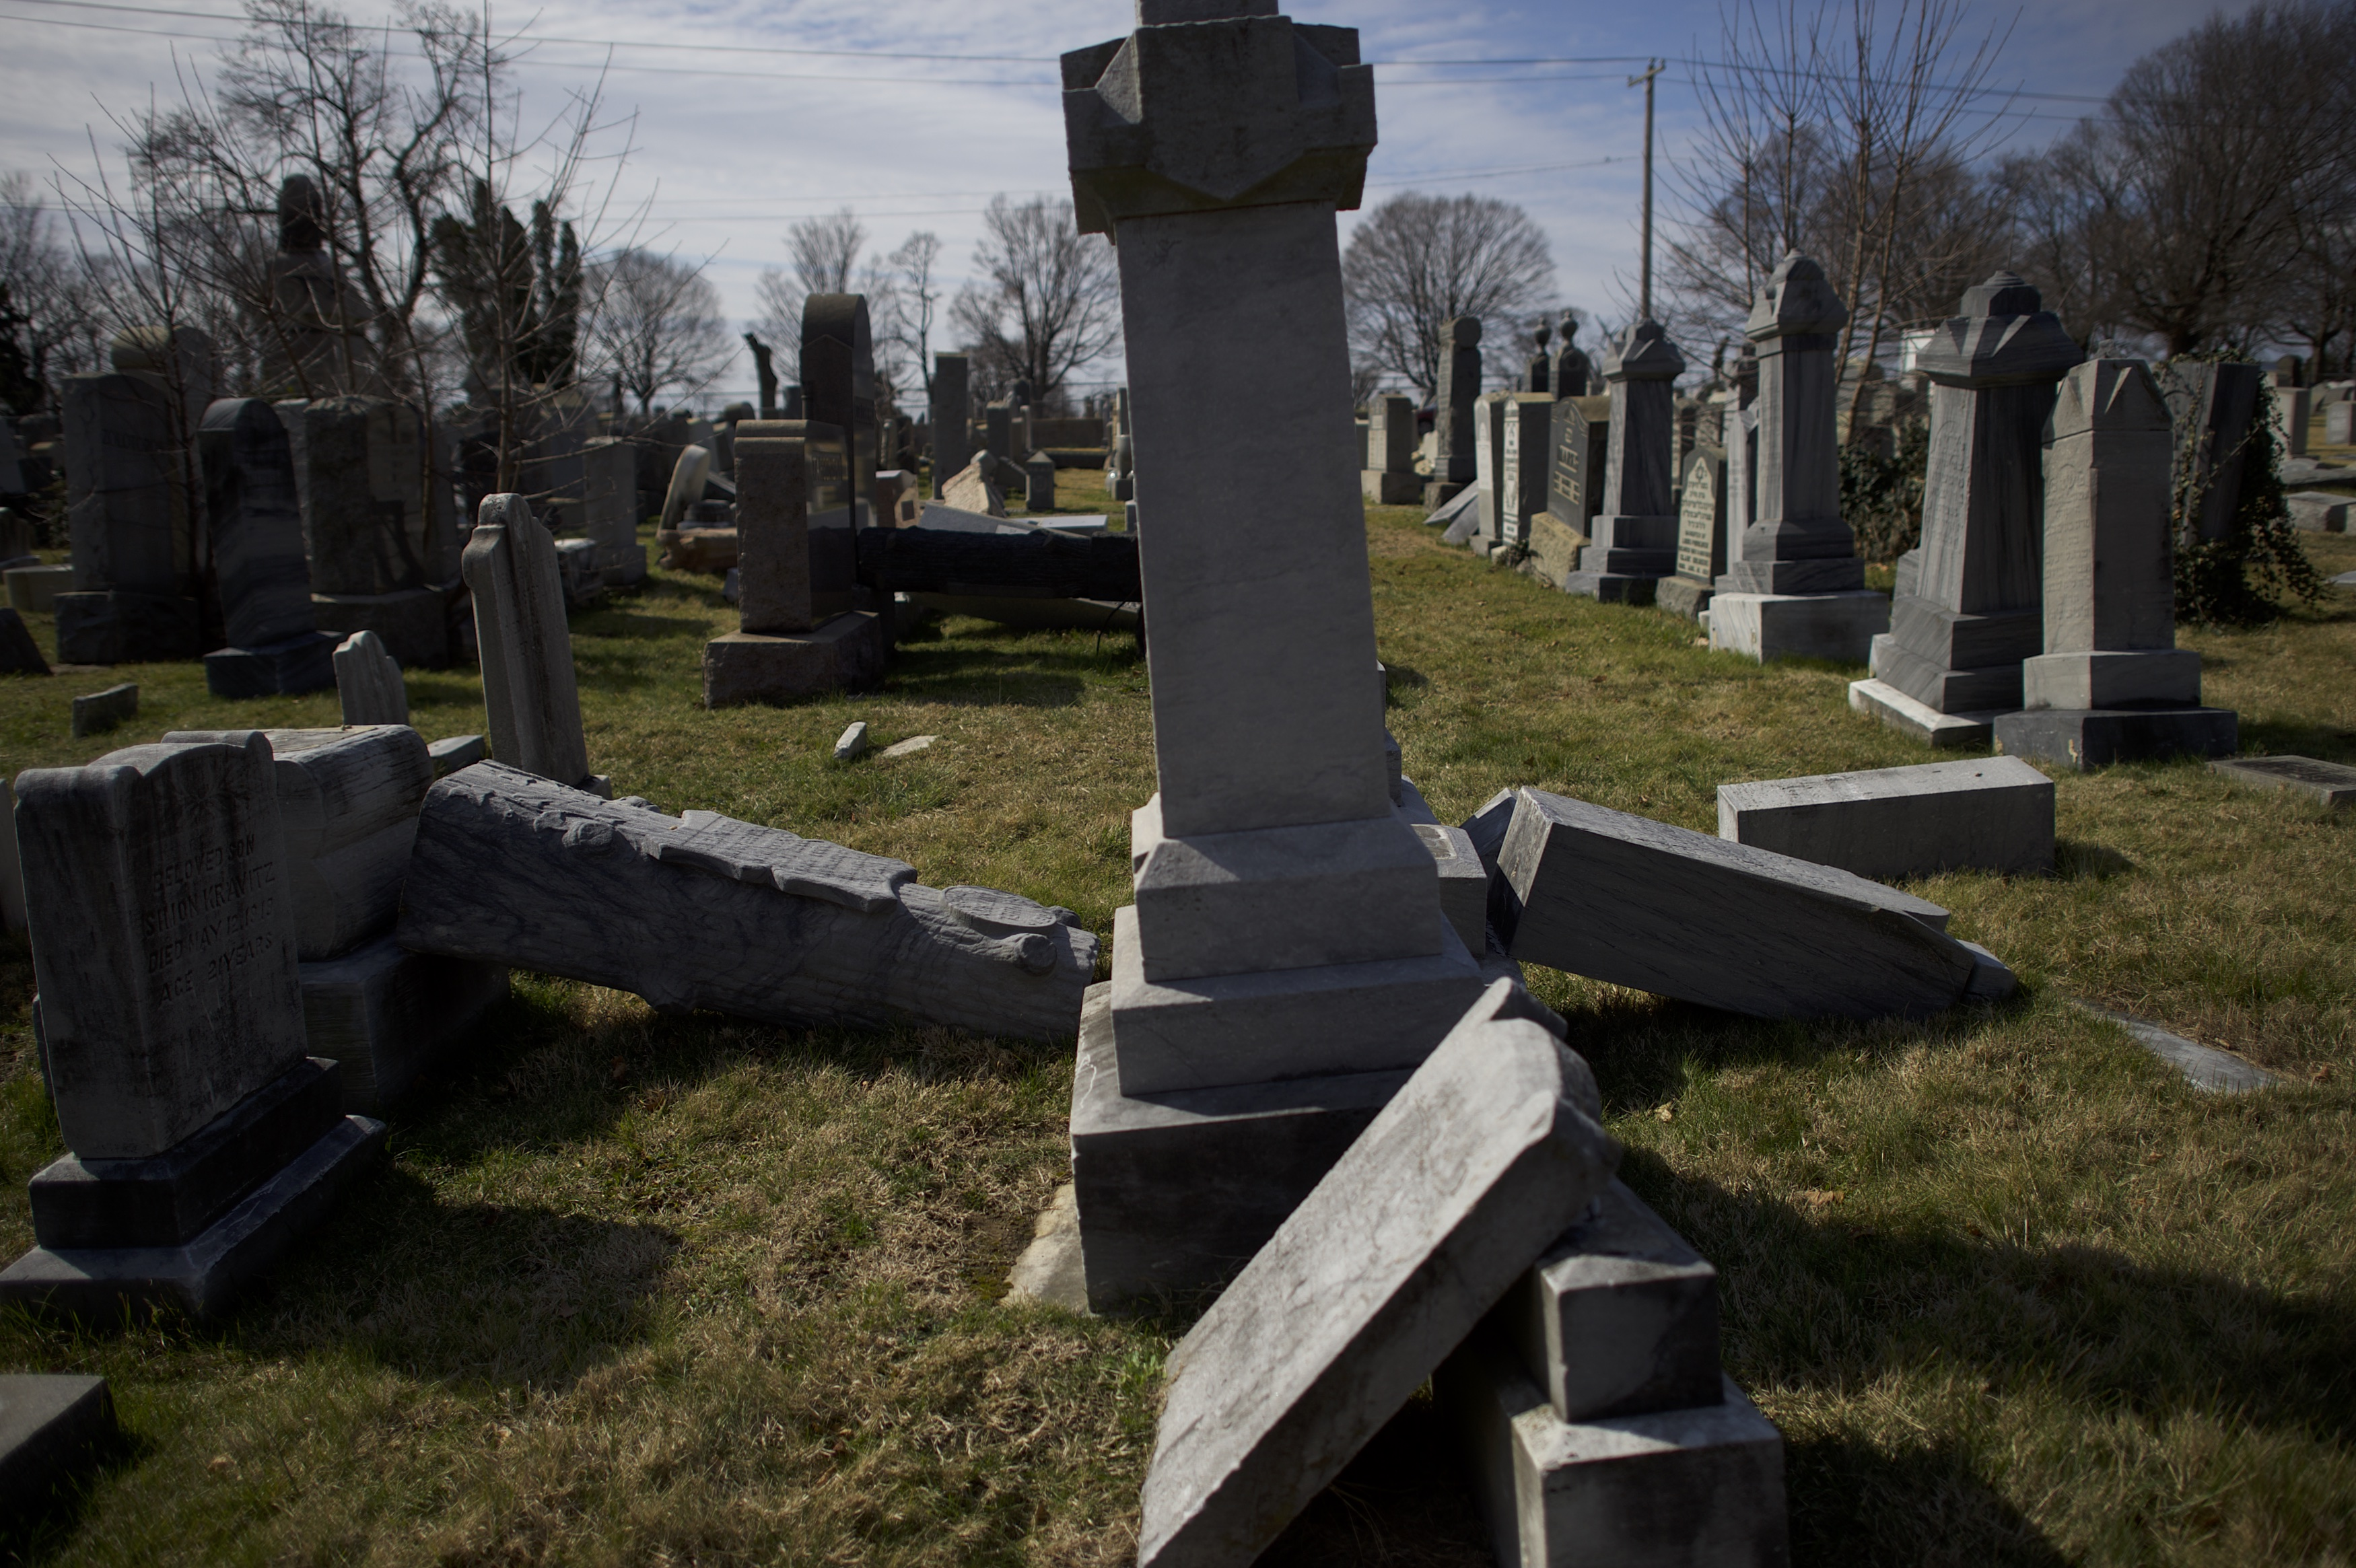 PHILADELPHIA, PA - FEBRUARY 27:  Jewish tombstones lay vandalized at Mount Carmel Cemetery February 27, 2017 in Philadelphia, Pennsylvania.  Police are investigating 75-100 gravestones that were damaged by vandals yesterday. (Photo by Mark Makela/Getty Images)